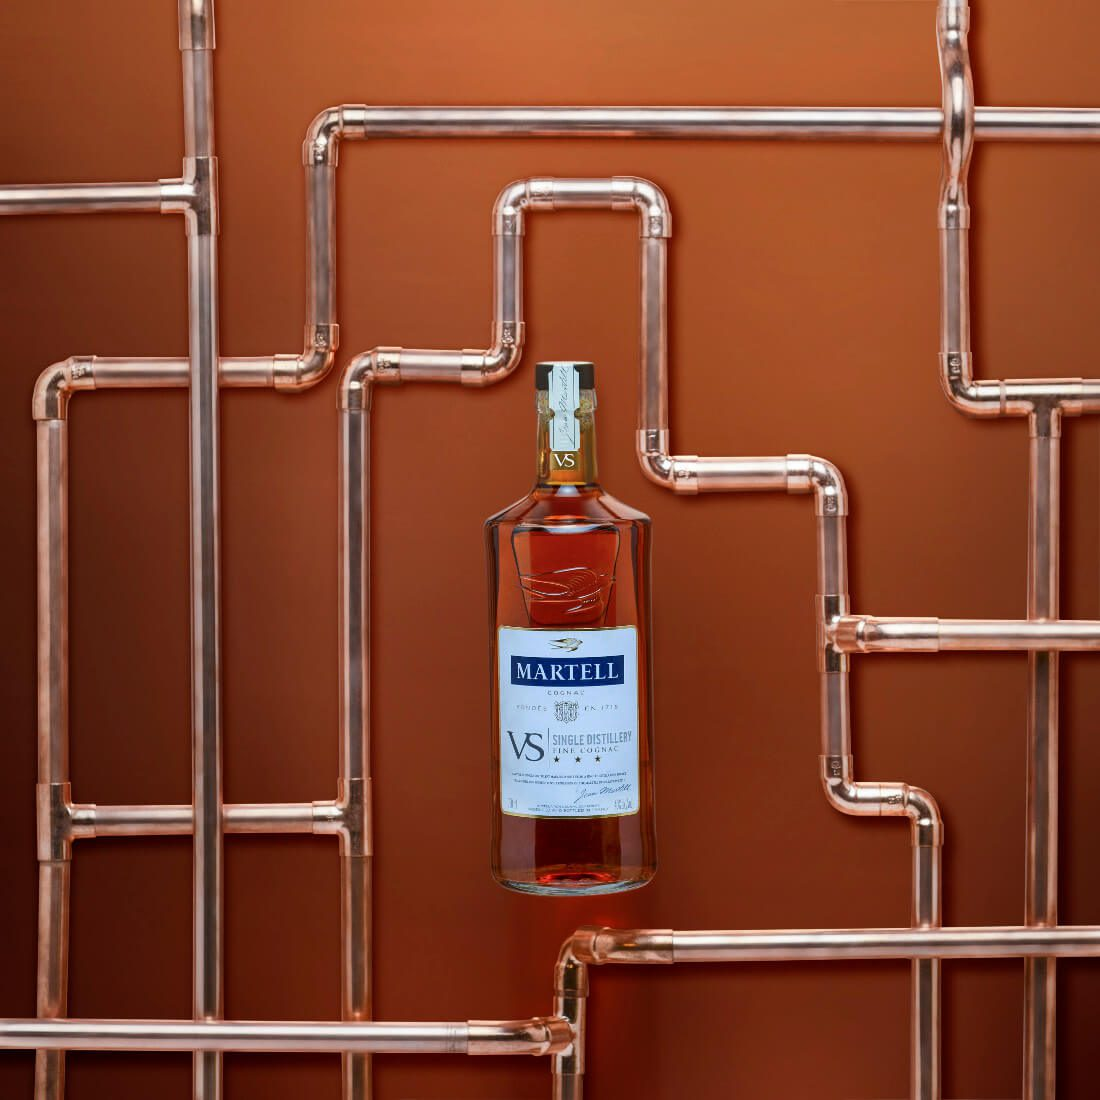 martell-vs-single-distillery-digital-picture-raw-visual-17